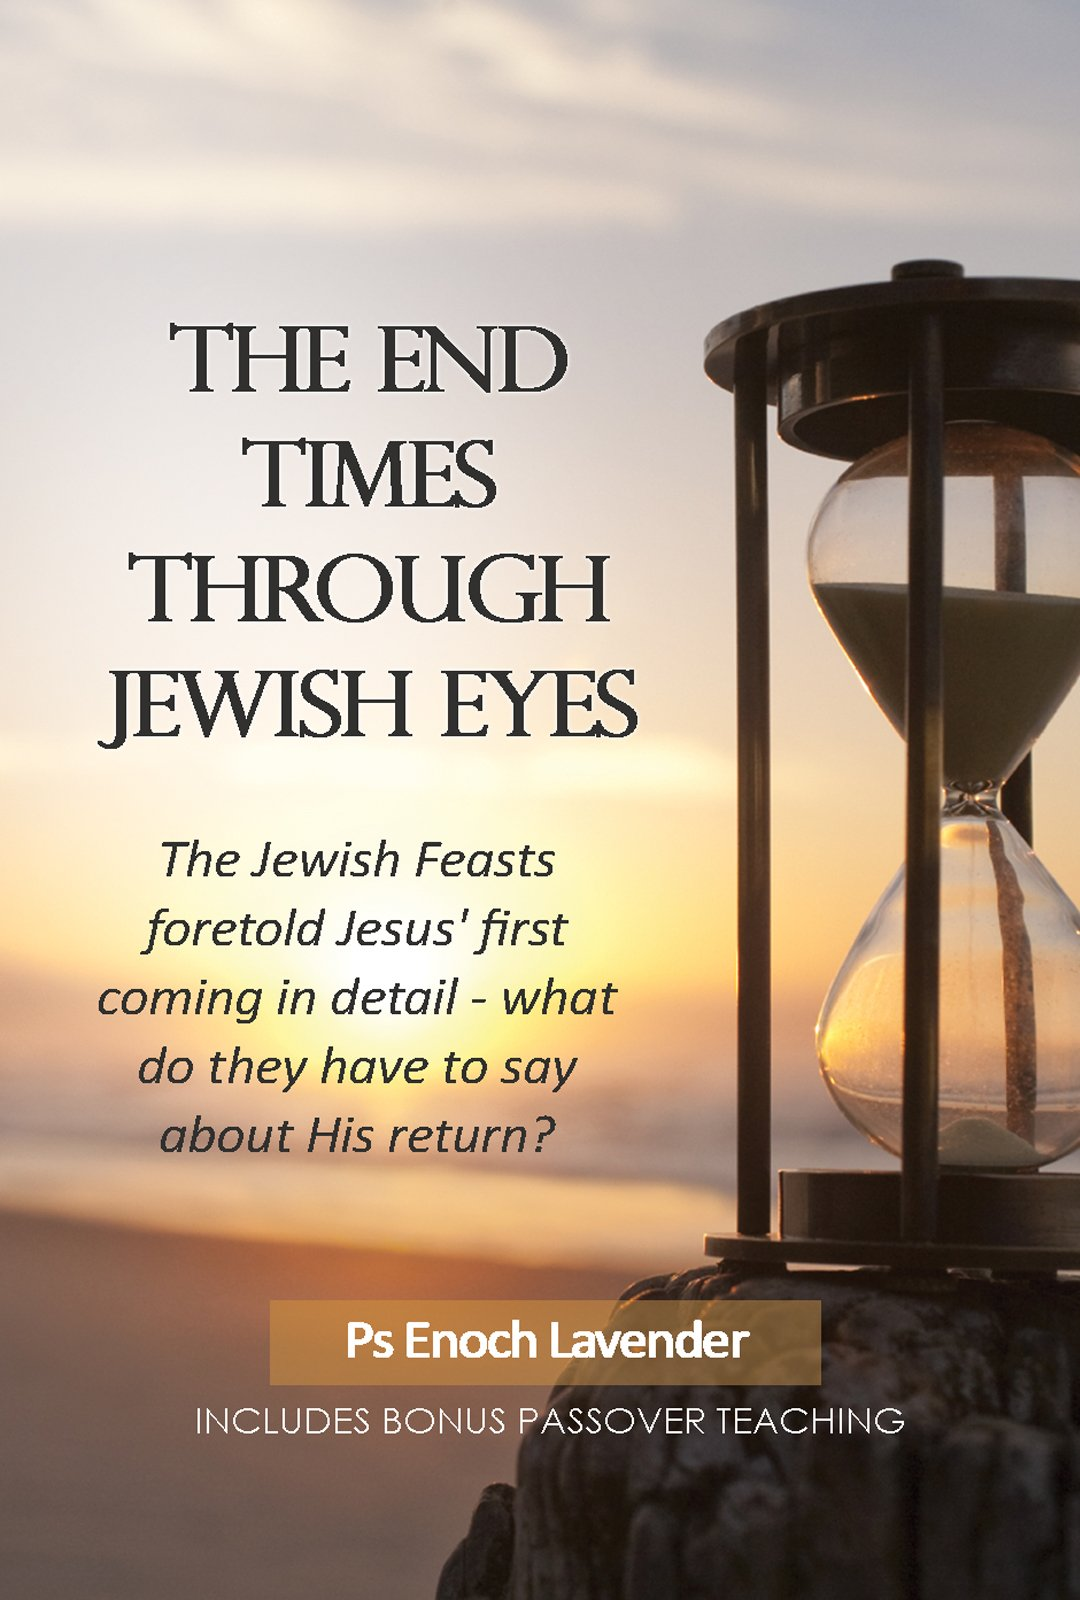 The End Times Through Jewish Eyes